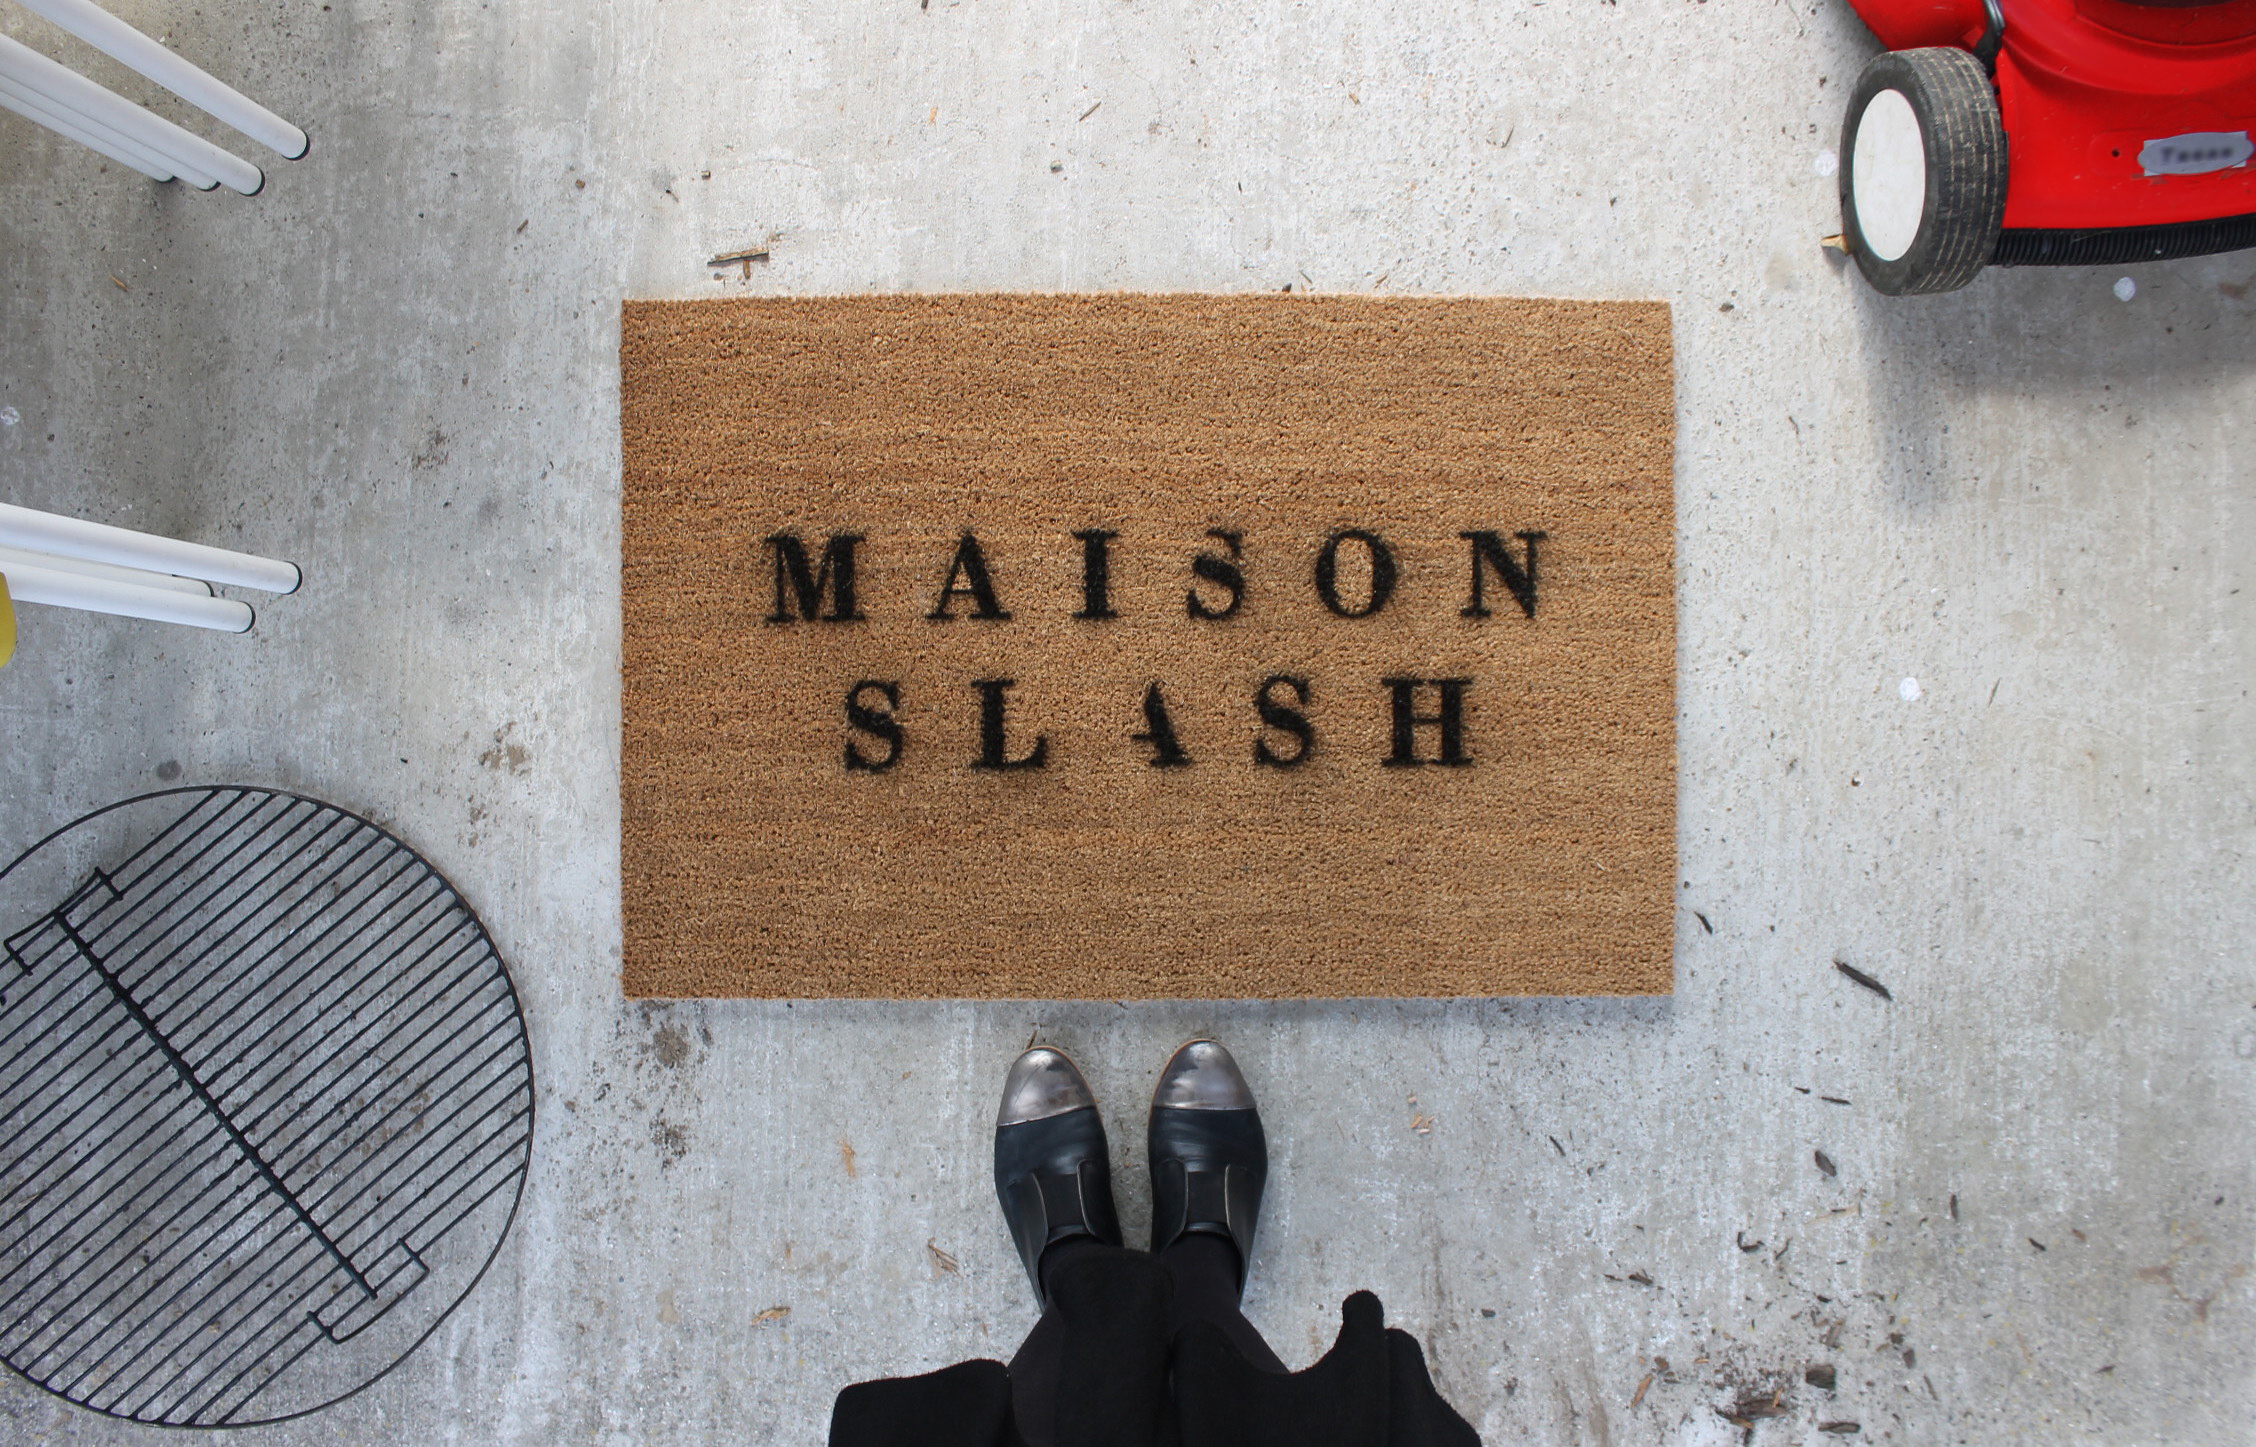 Maison Slash - Where the parents are alright!